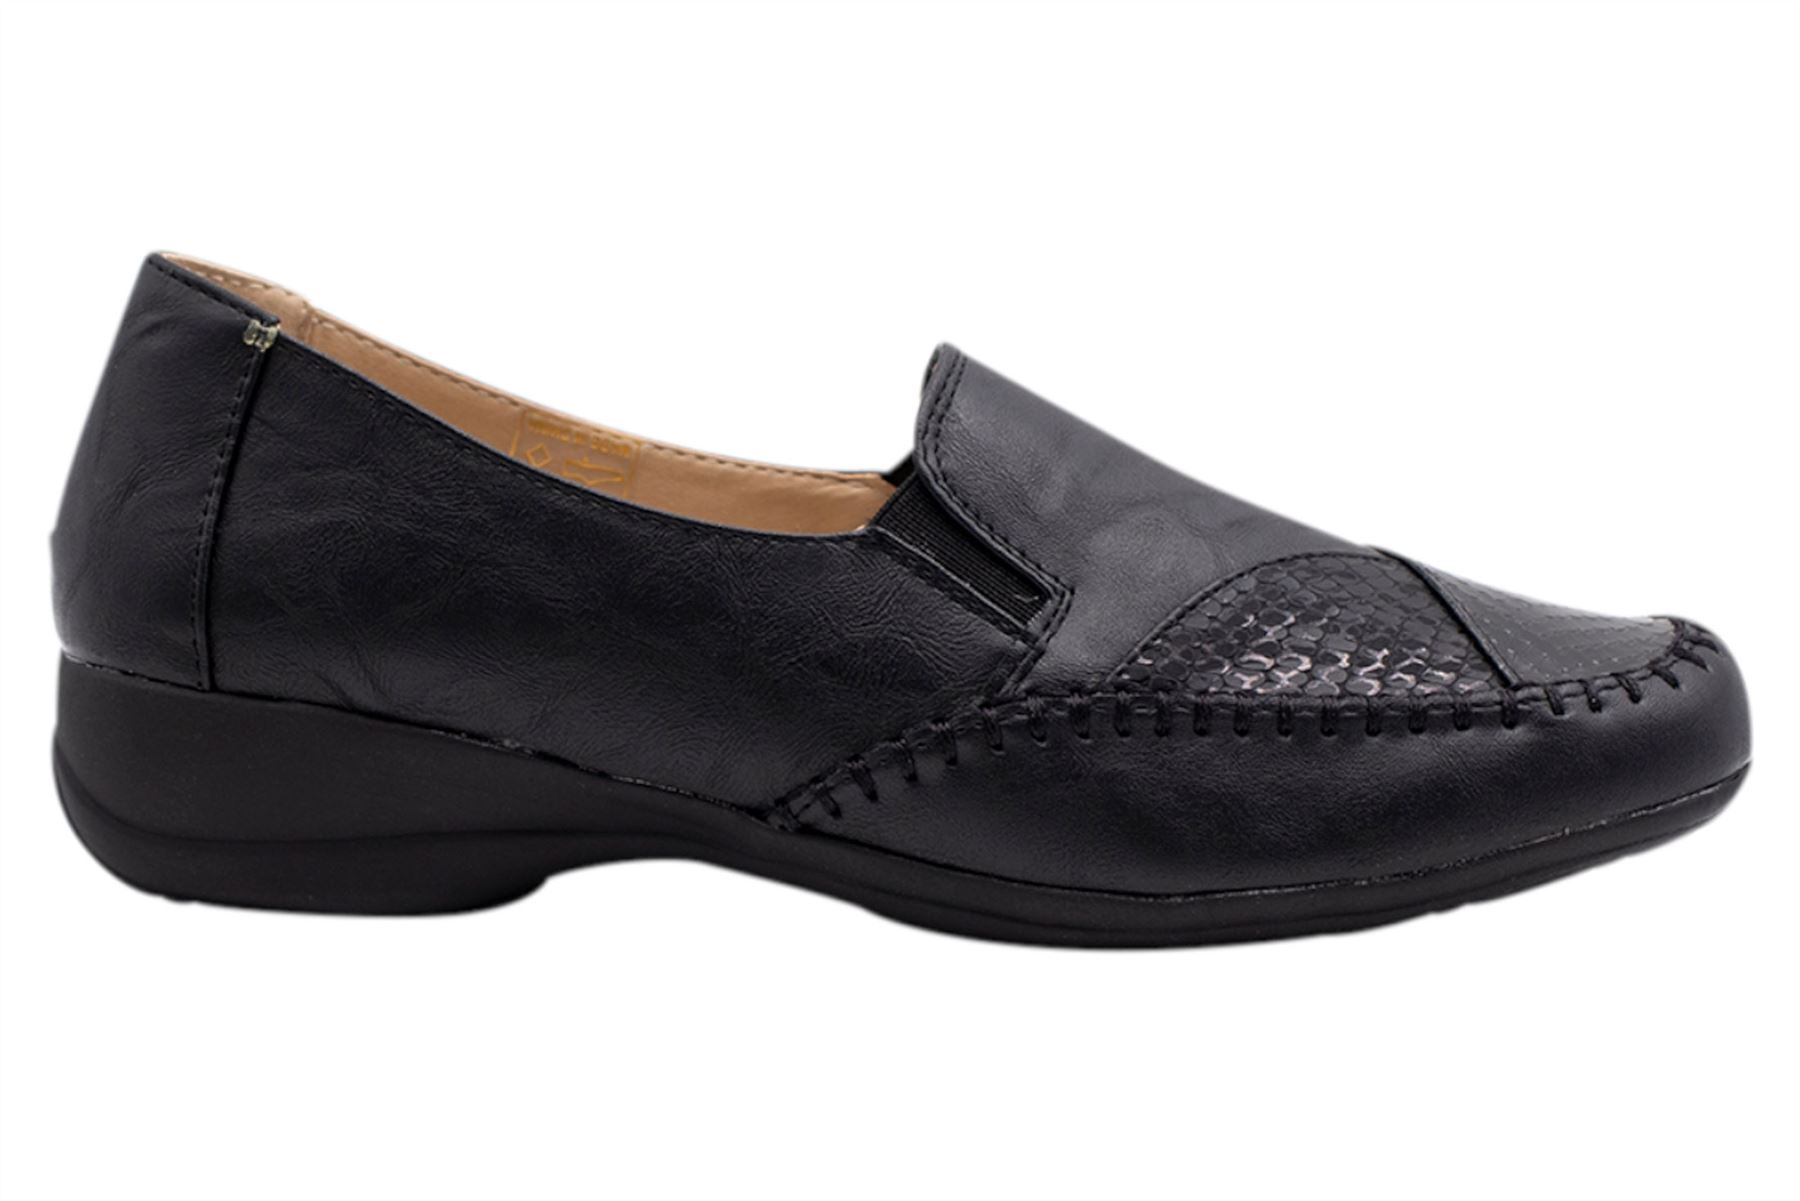 Womens-Flat-Shoes-Ladies-Pumps-Office-Work-Casual-Slip-On-Loafer-Size thumbnail 27